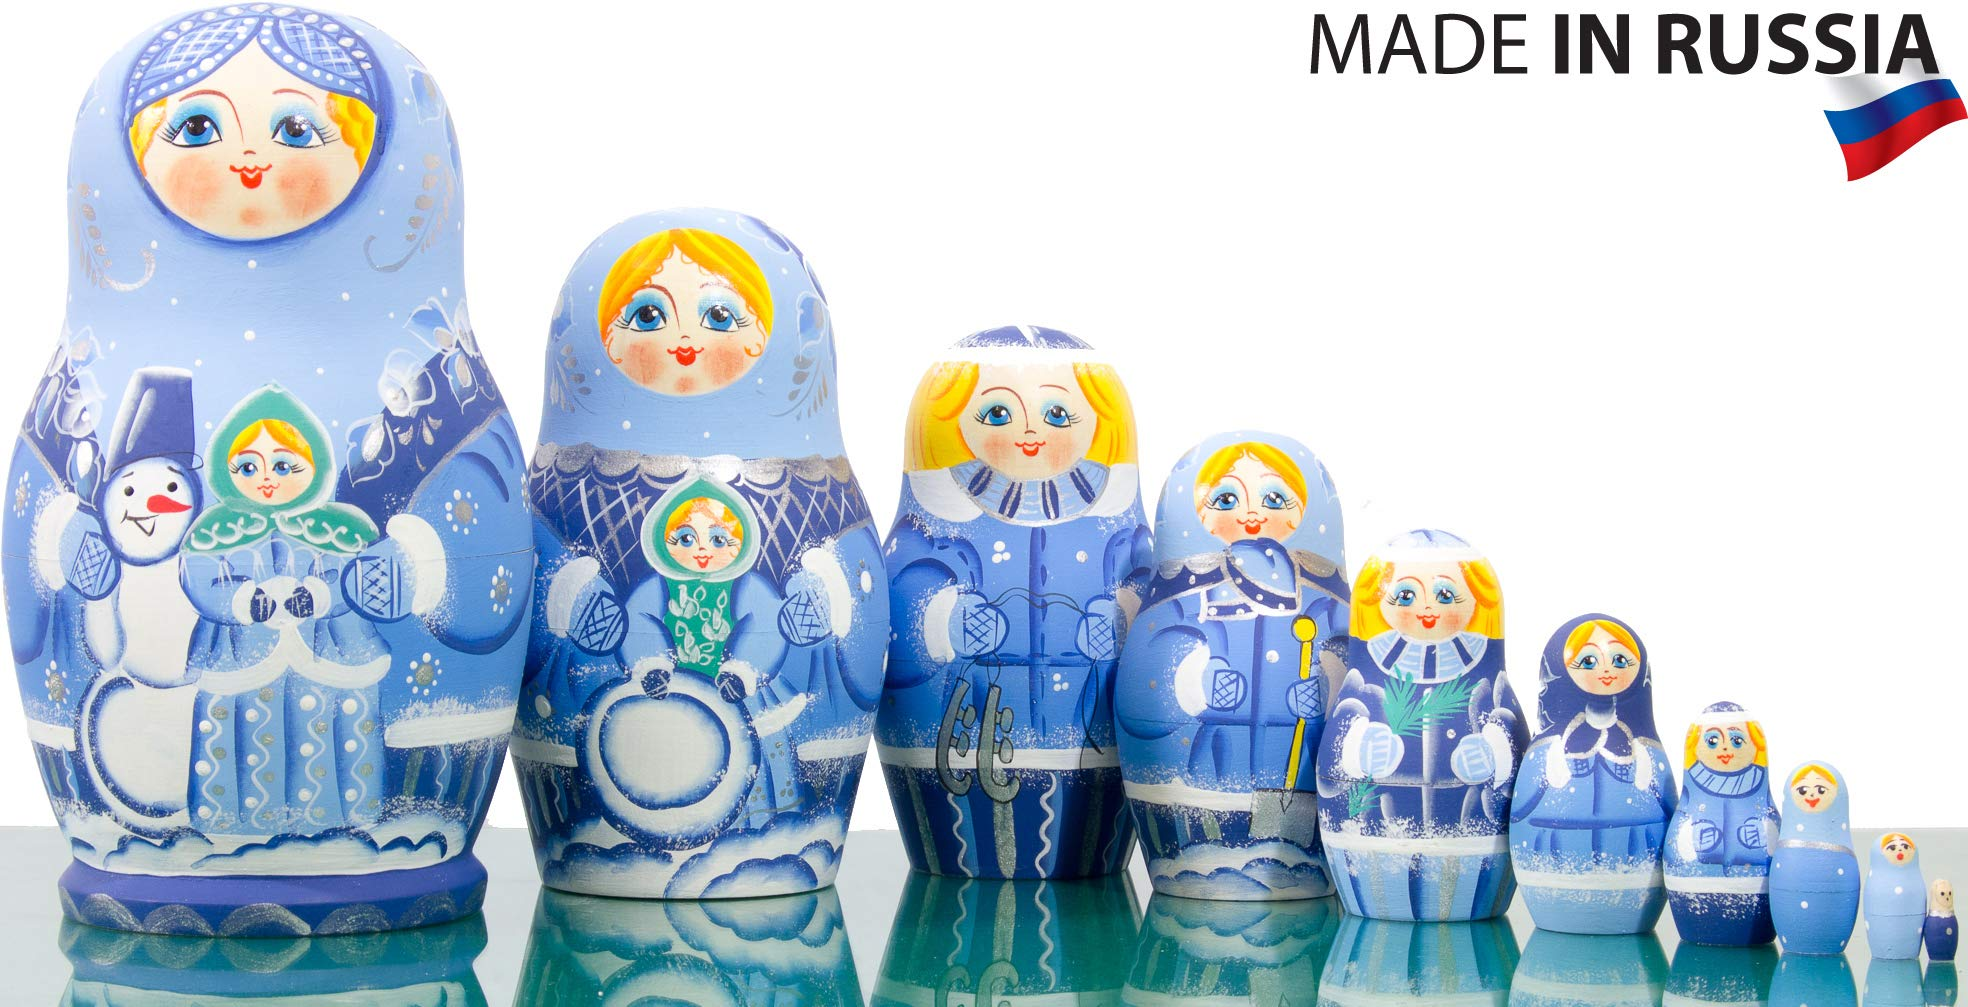 Russian Nesting Doll - Kirov - VJATKA - Hand Painted in Russia - Big Size - Wooden Decoration Gift Doll - Matryoshka Babushka (Style B, 8.25`` (10 Dolls in 1))